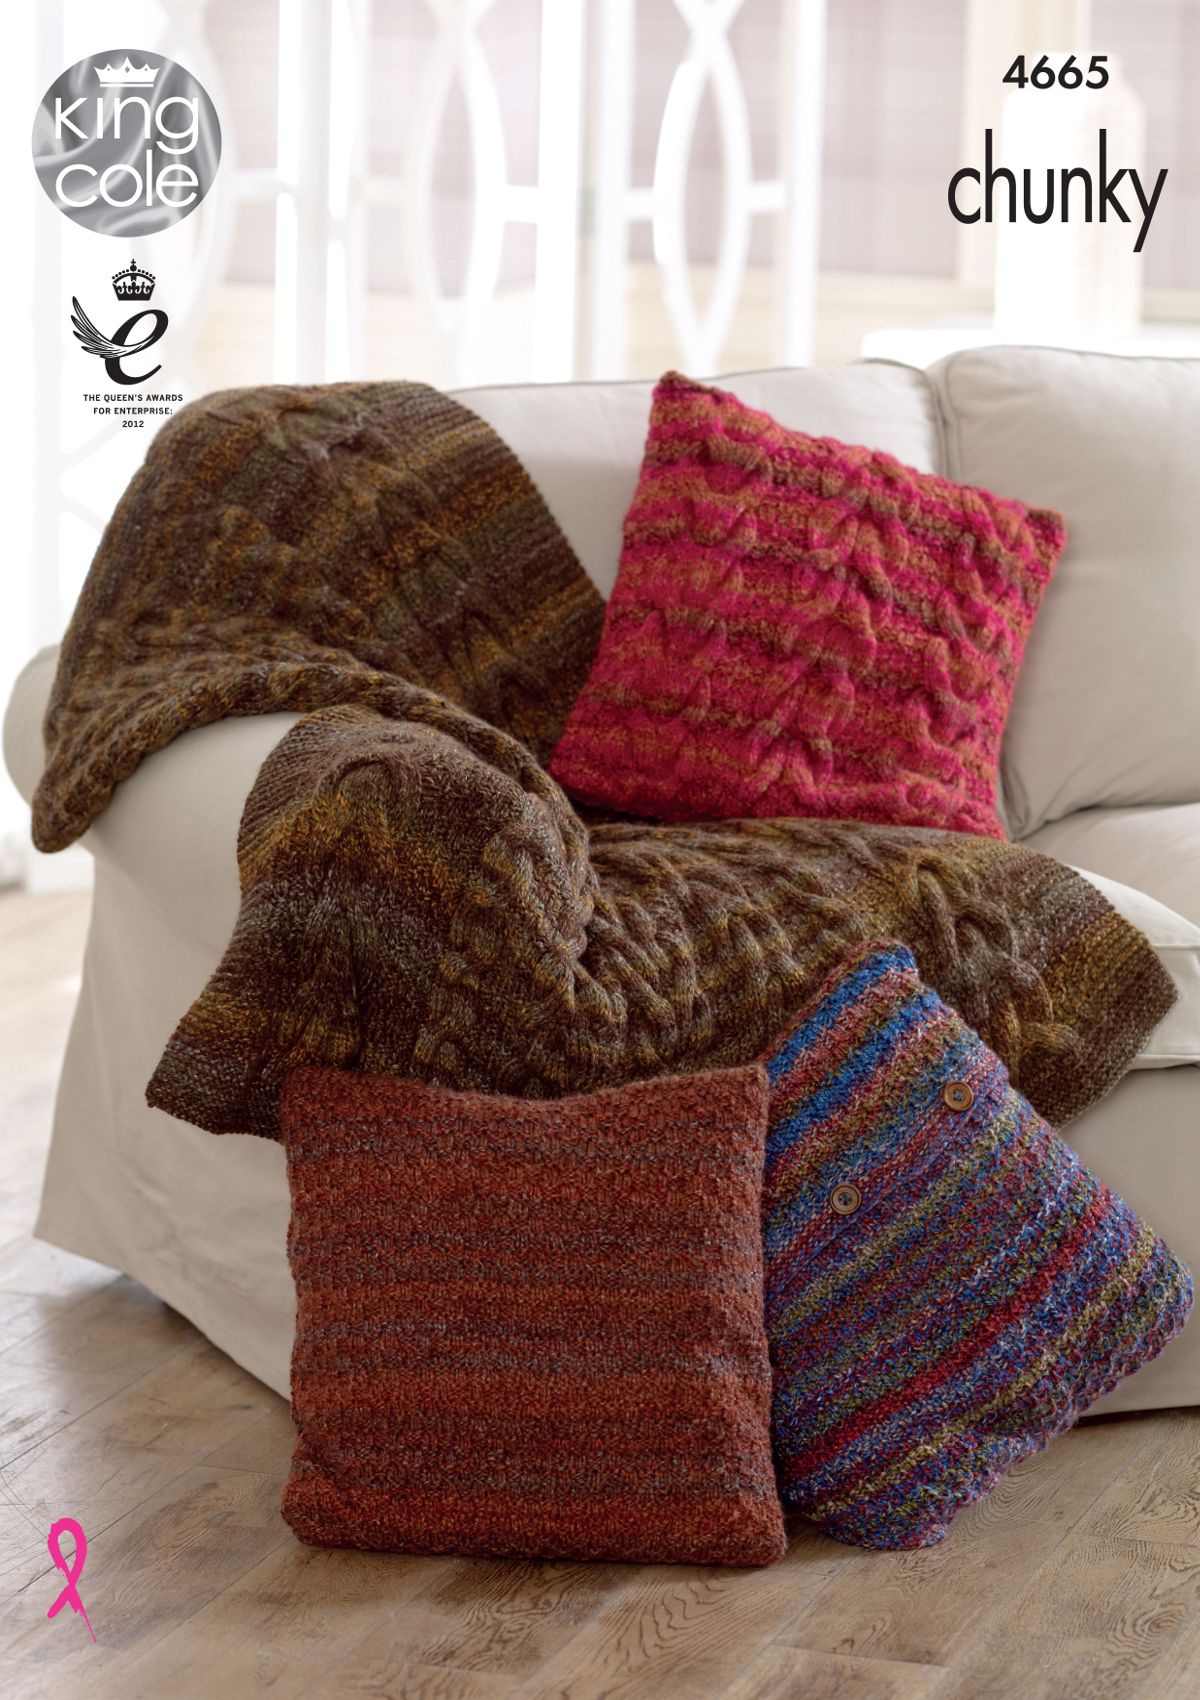 Knitting Pattern For Cushion Cover With Cables Details About King Cole Chunky Knitting Pattern Throw Cable Moss Stitch Cushion Covers 4665